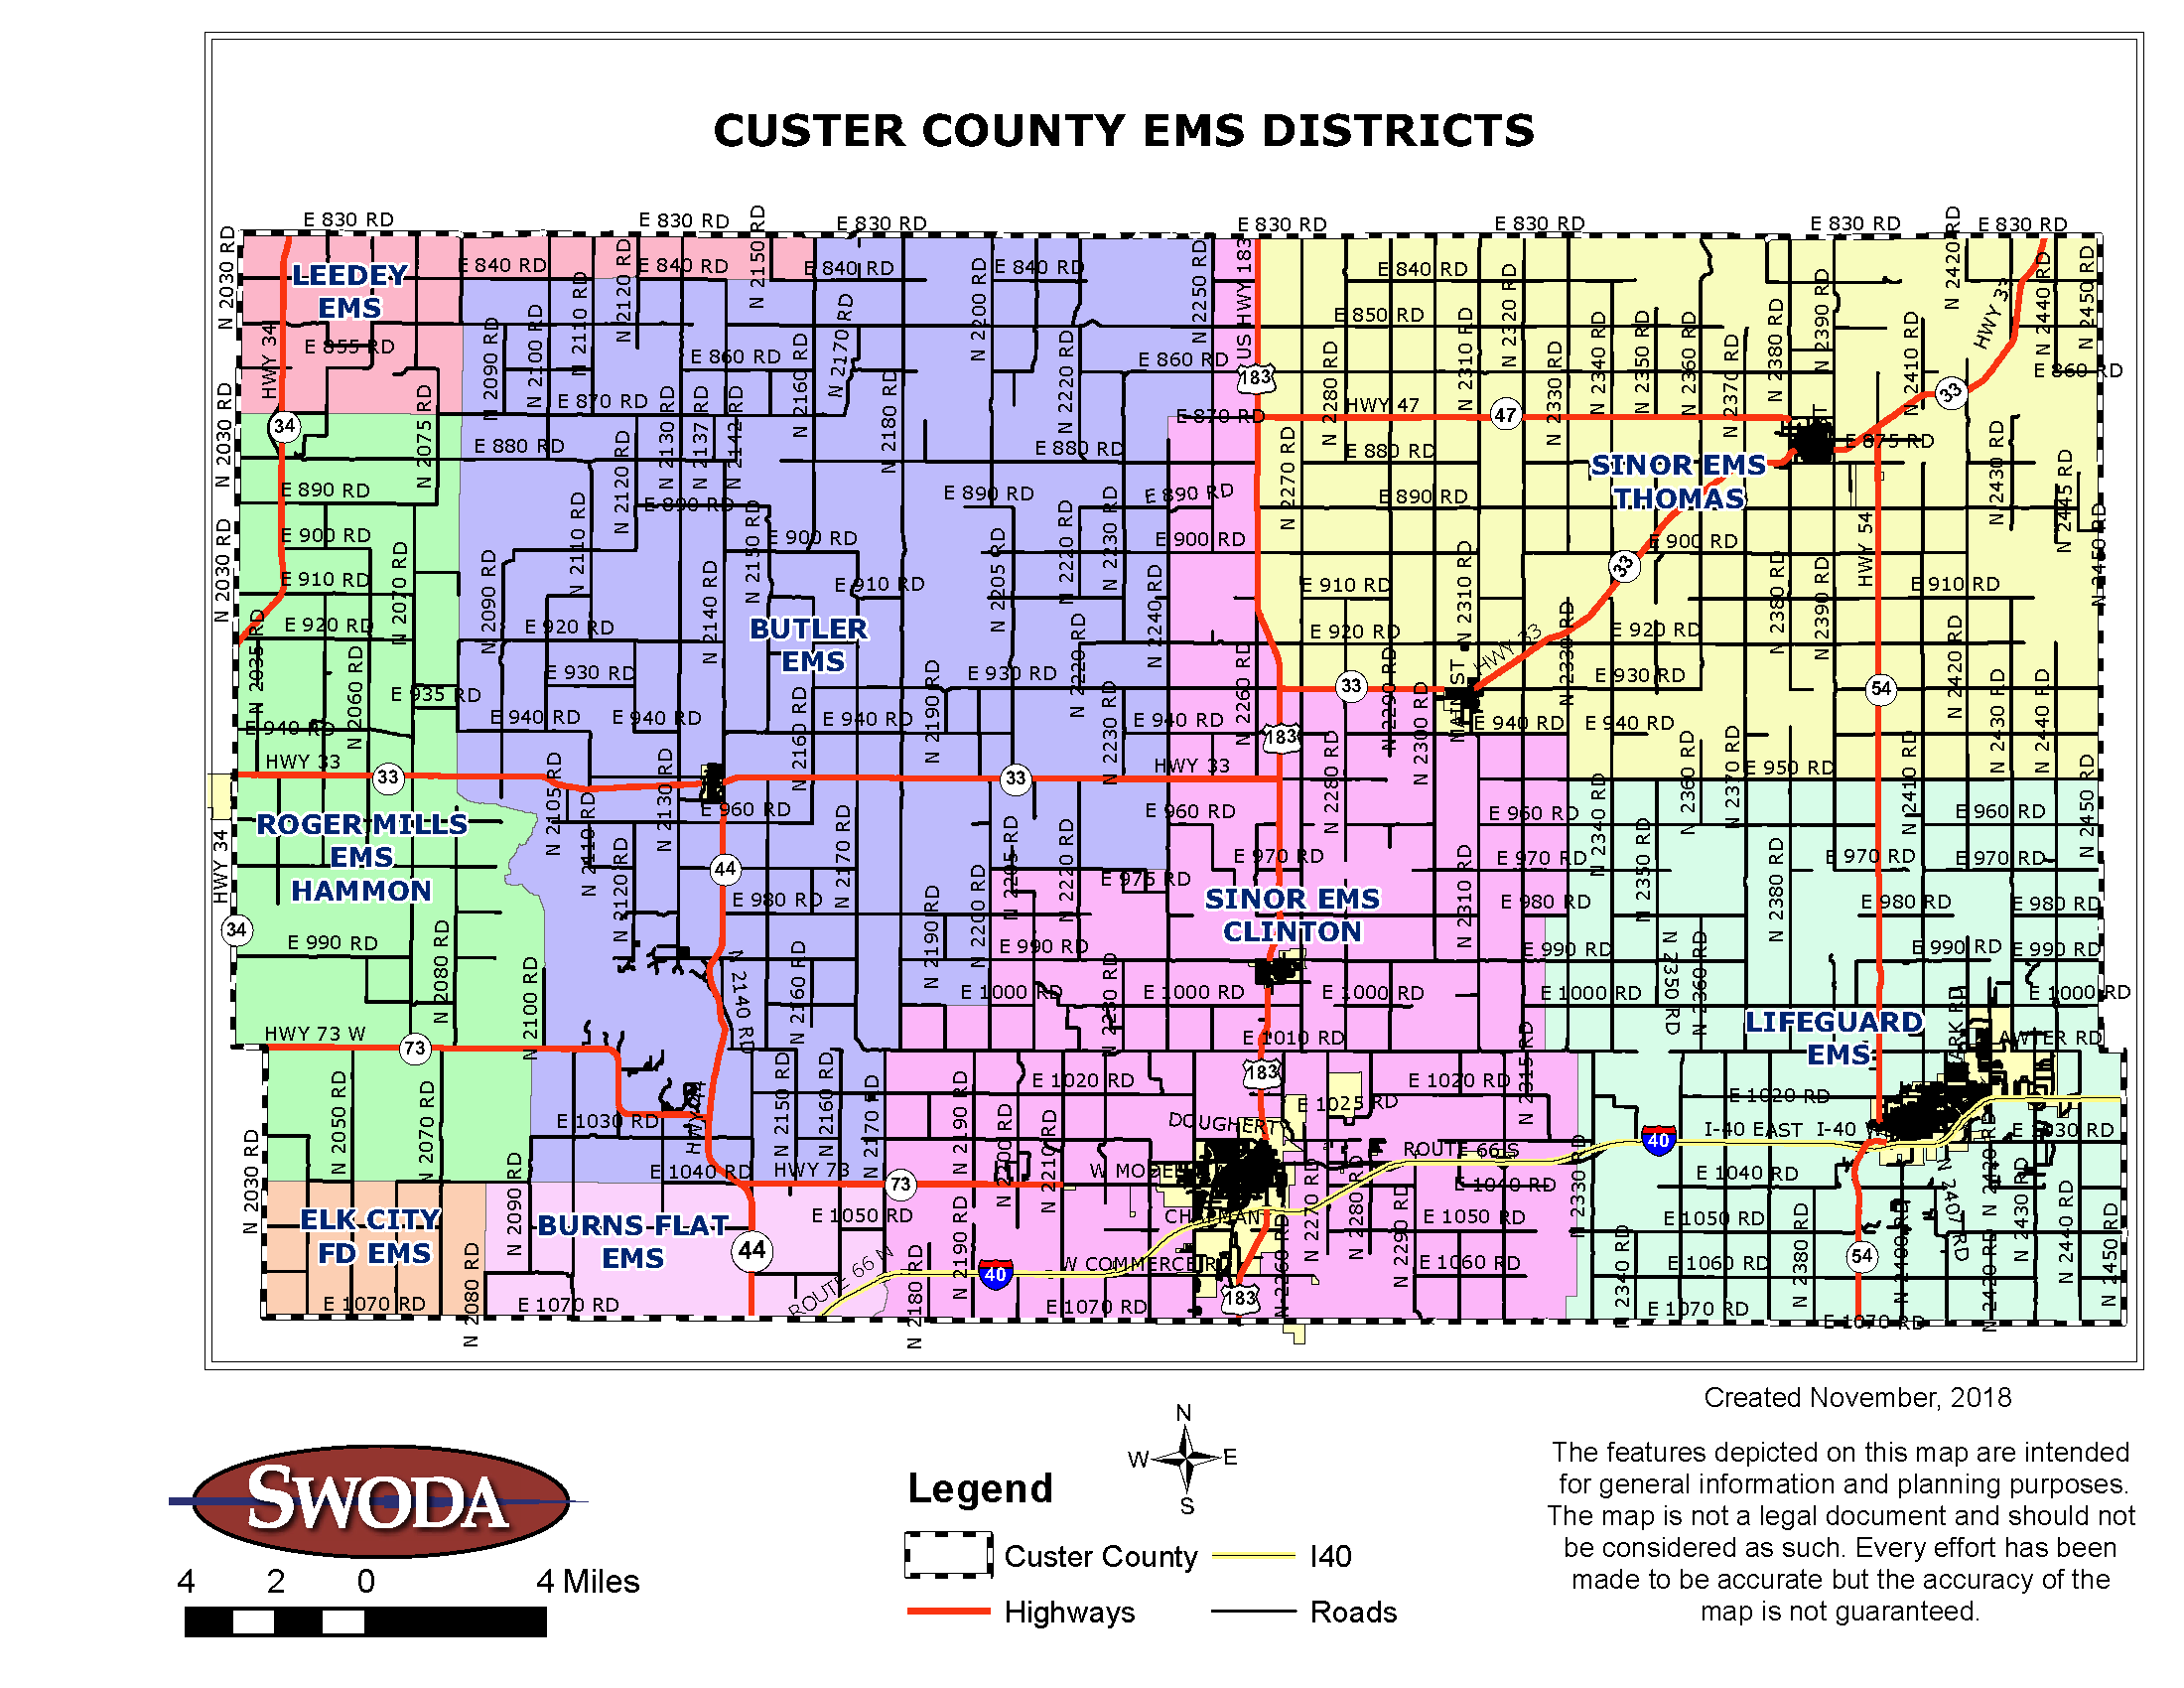 Custer County Emergency Medical Services Districts